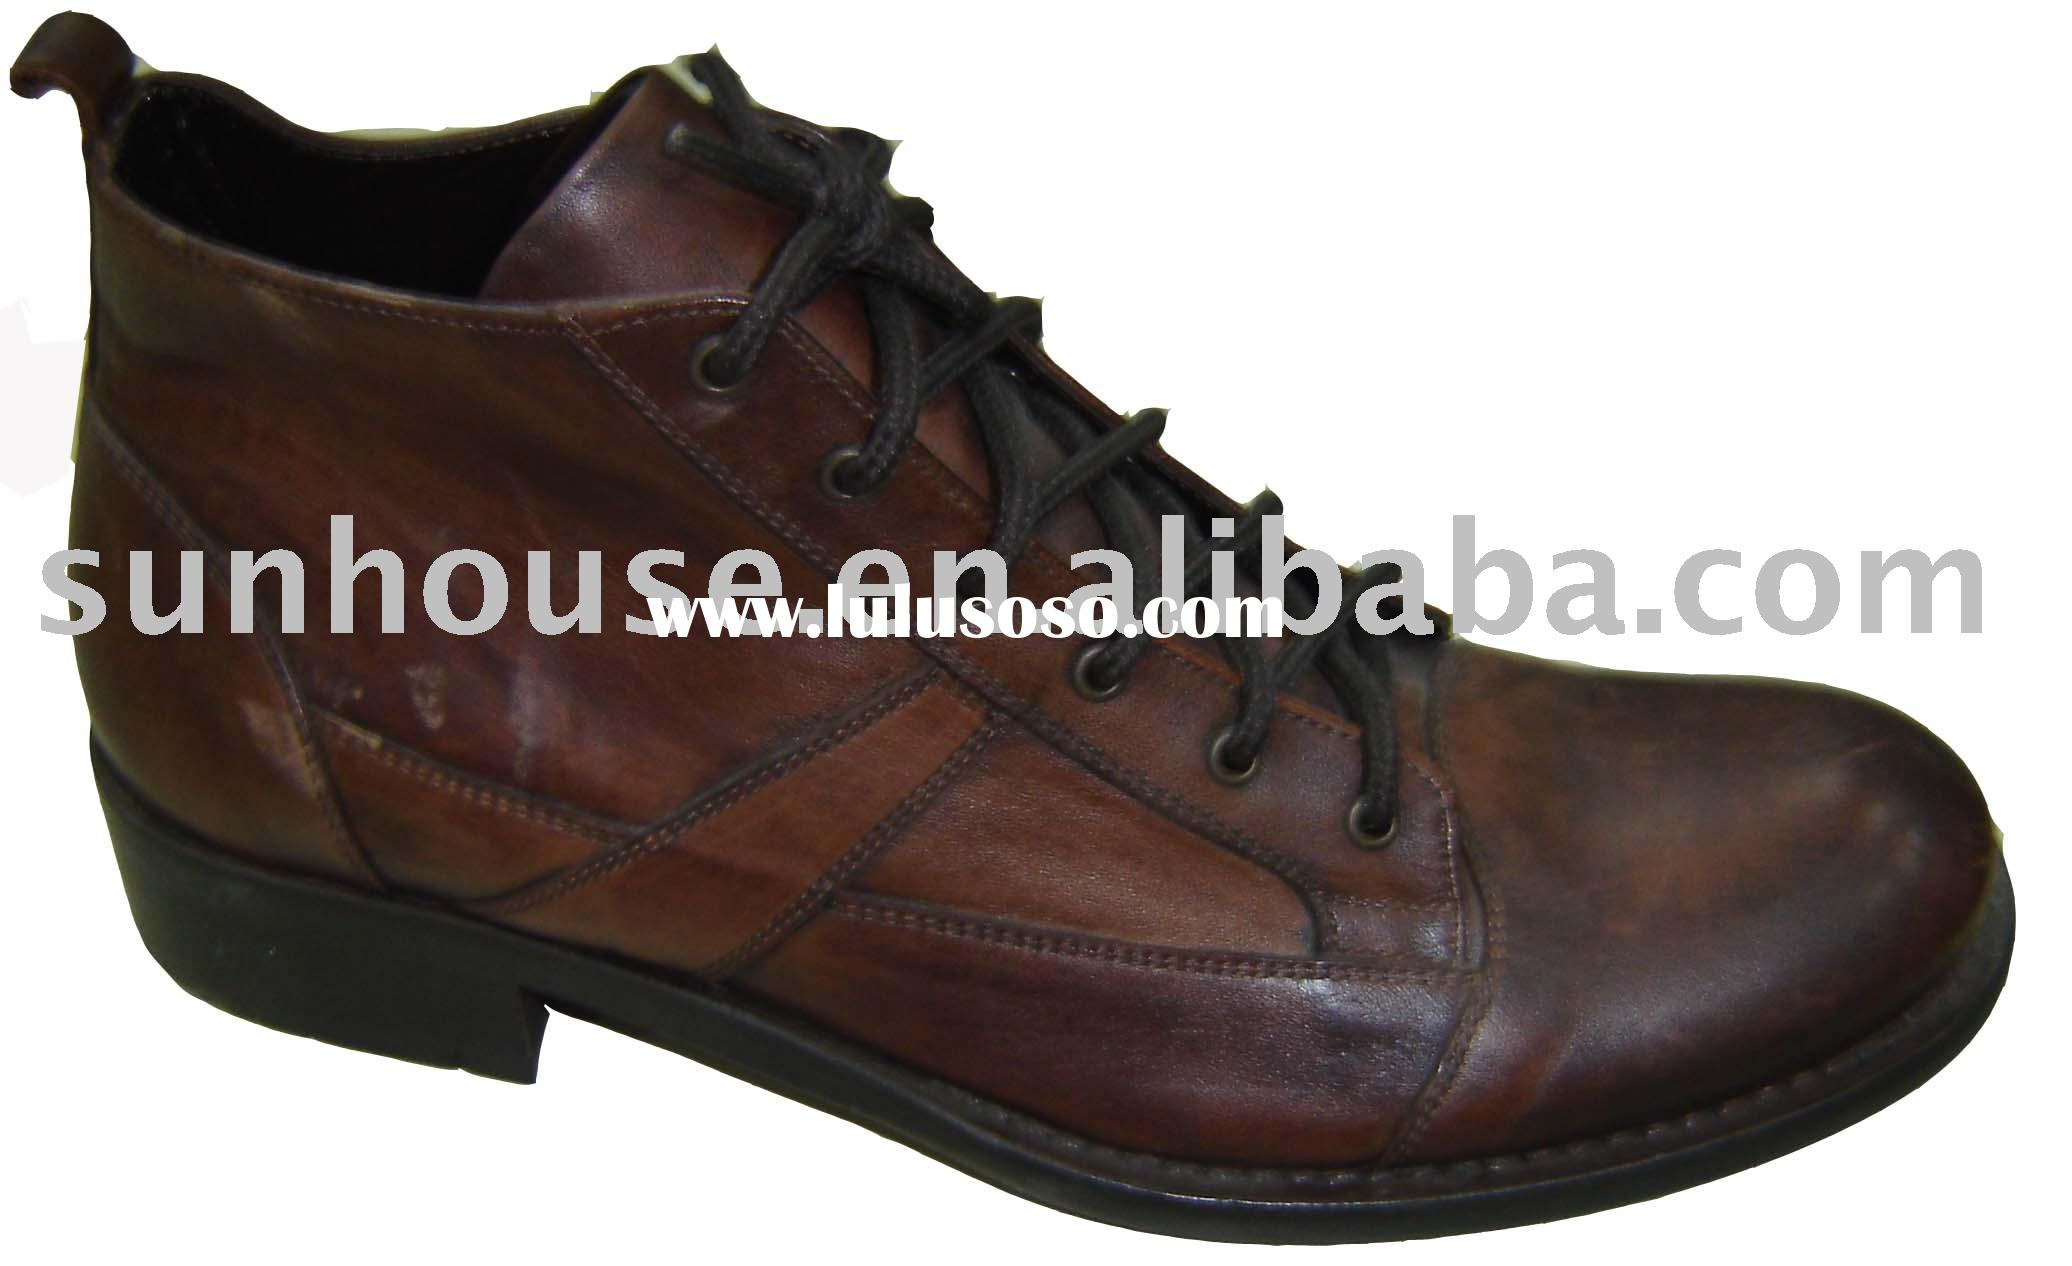 Hot style for men's dress shoes, fashionable, durable,High quality,competitive price